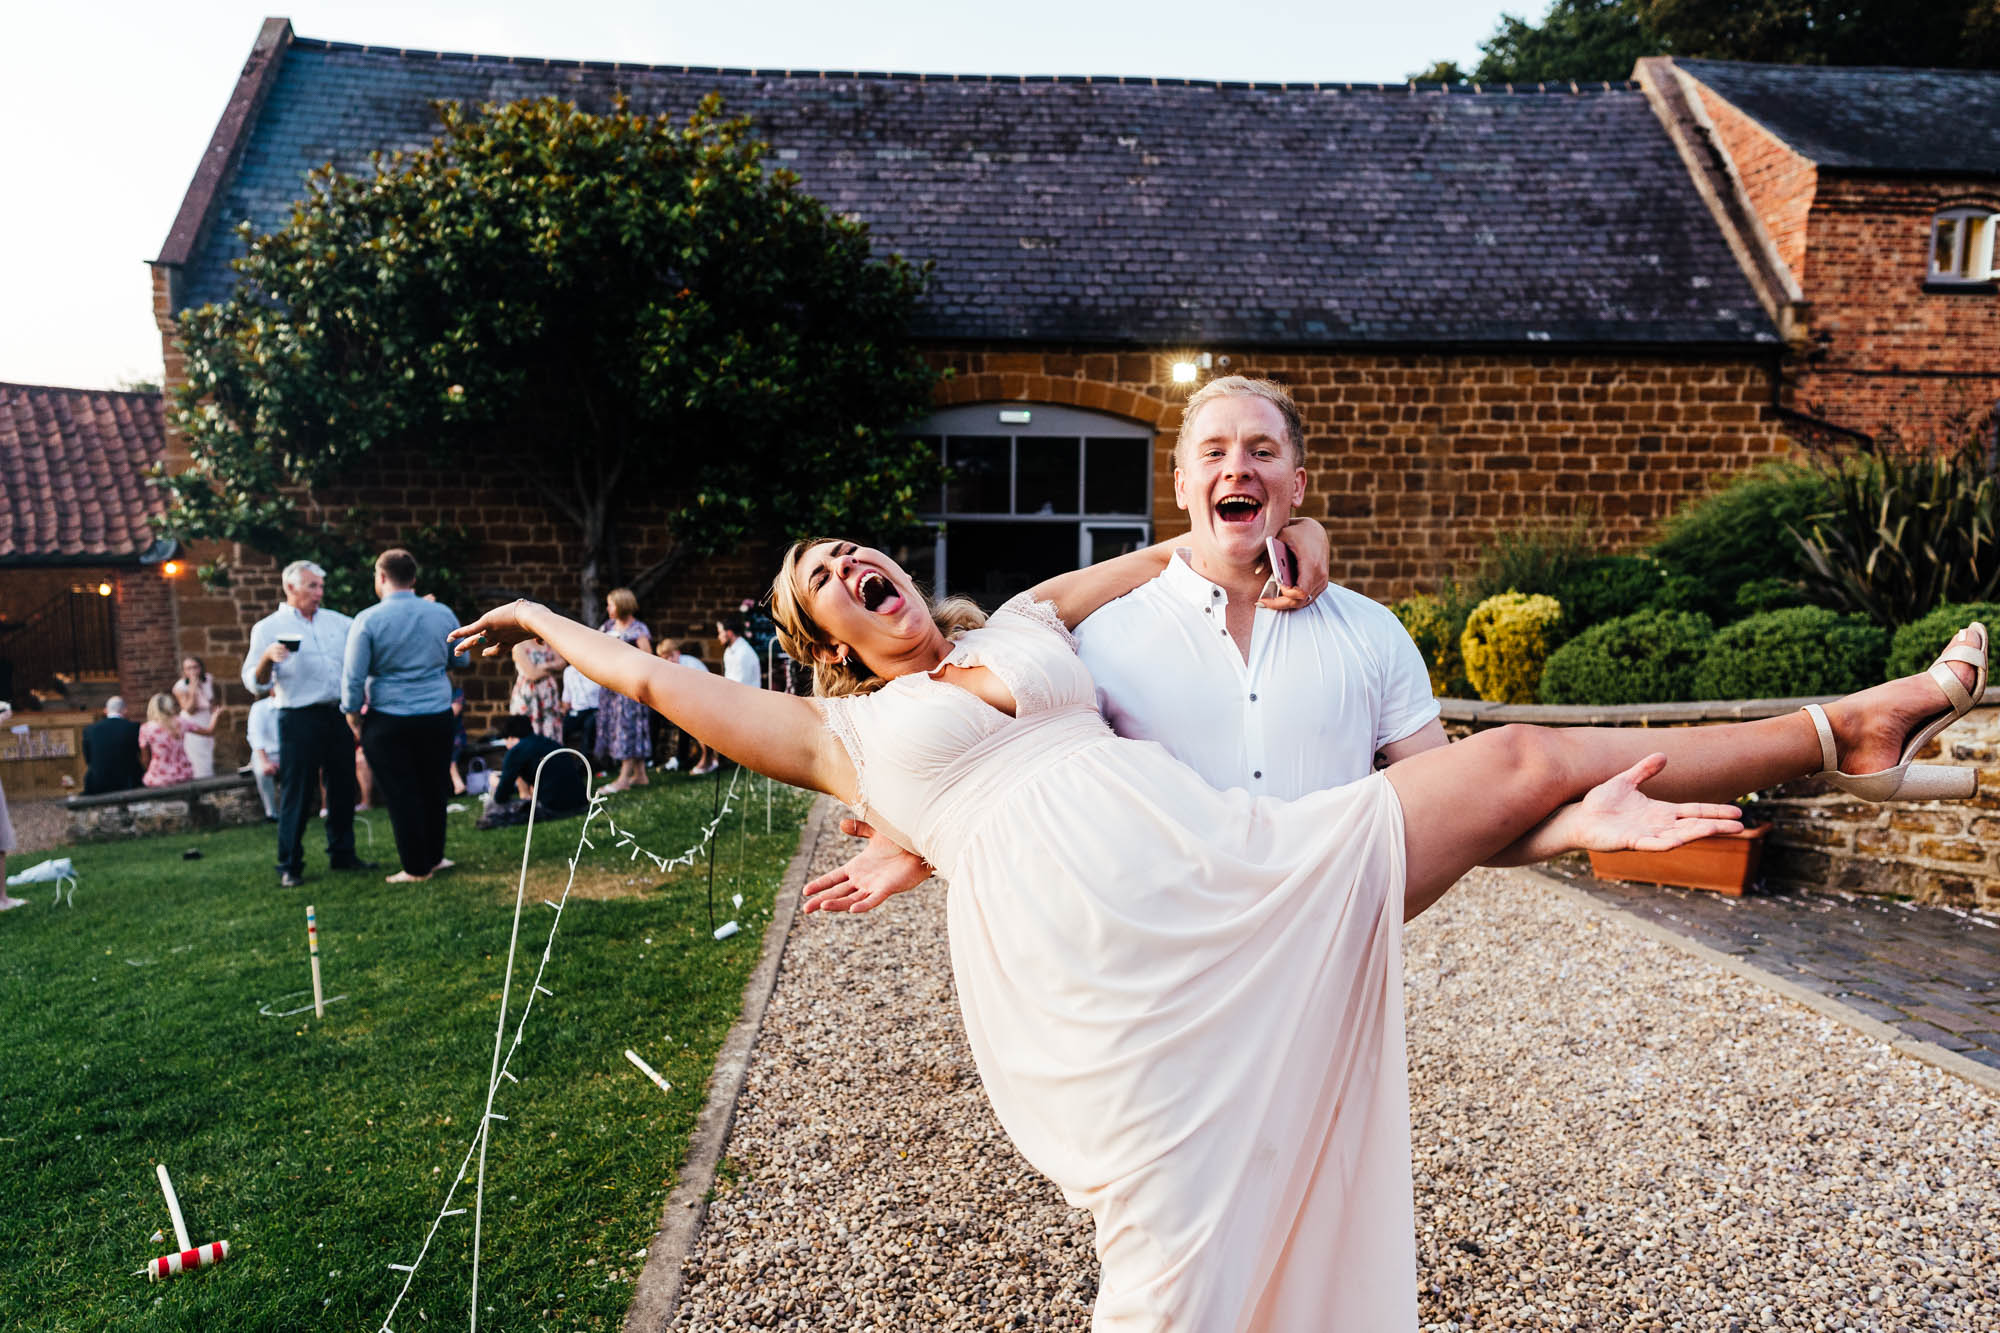 wedding-at-the-barns-at-hunsbury-hill-70